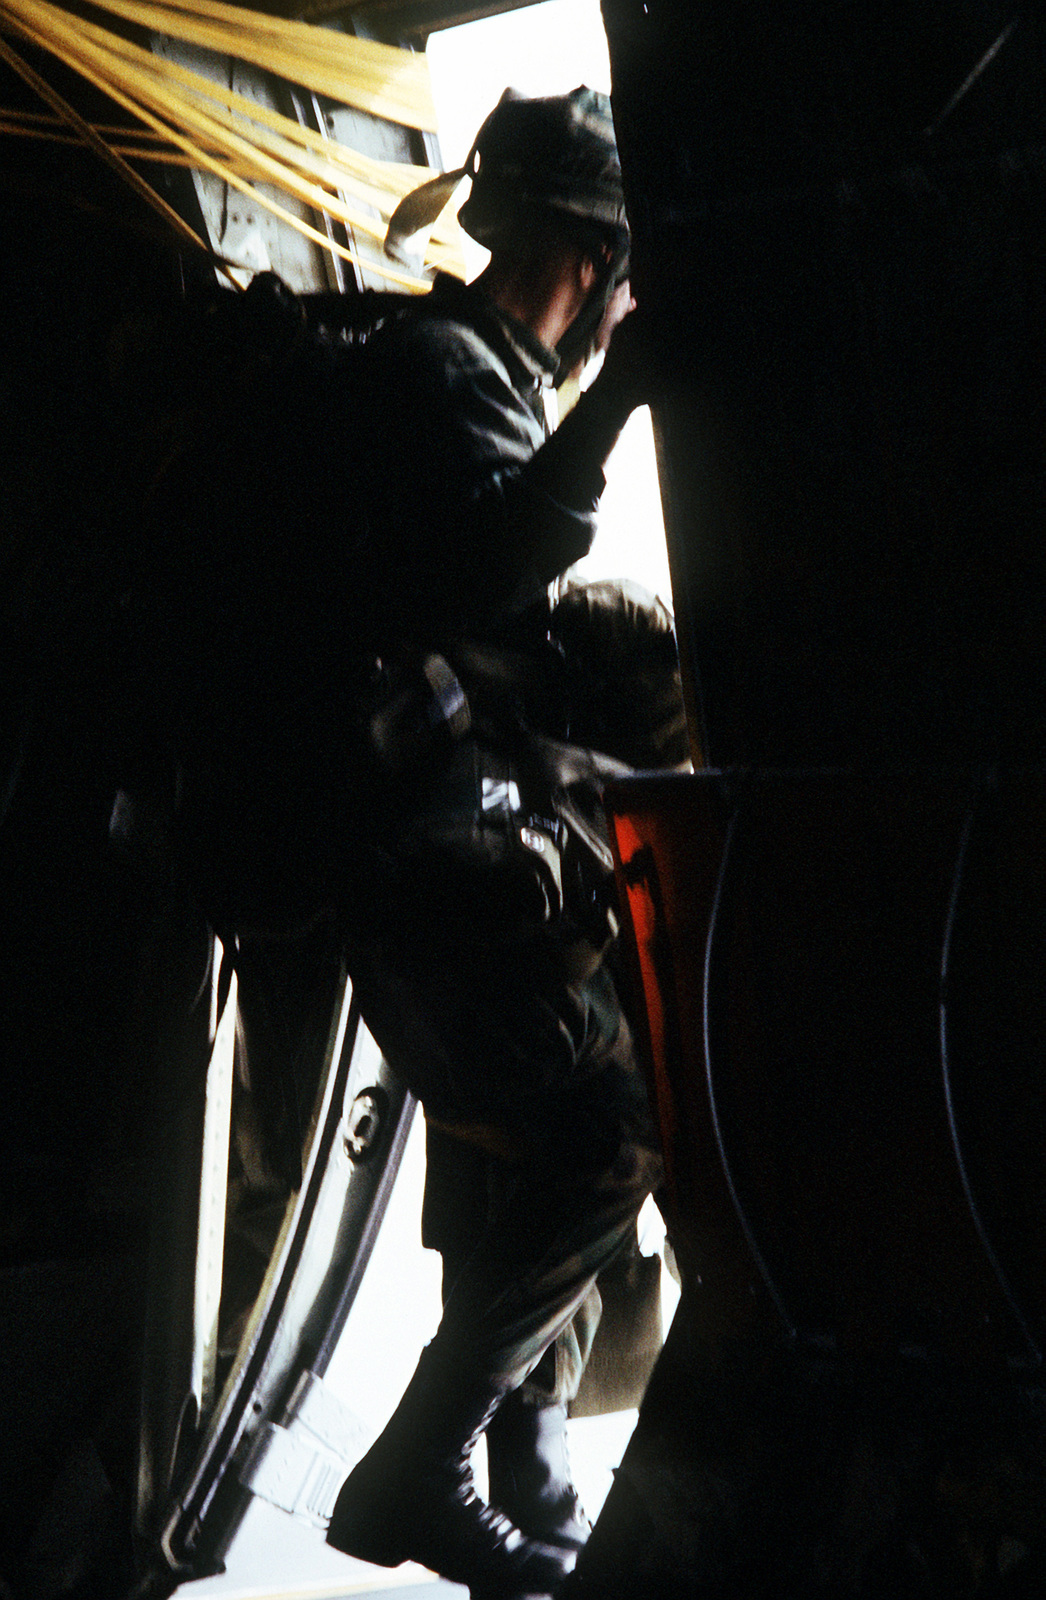 A member of the 509th Airborne Ranger Battalion prepares to jump from a 37th Tactical Airlift Squadron C-130 Hercules aircraft during an operational readiness exercise